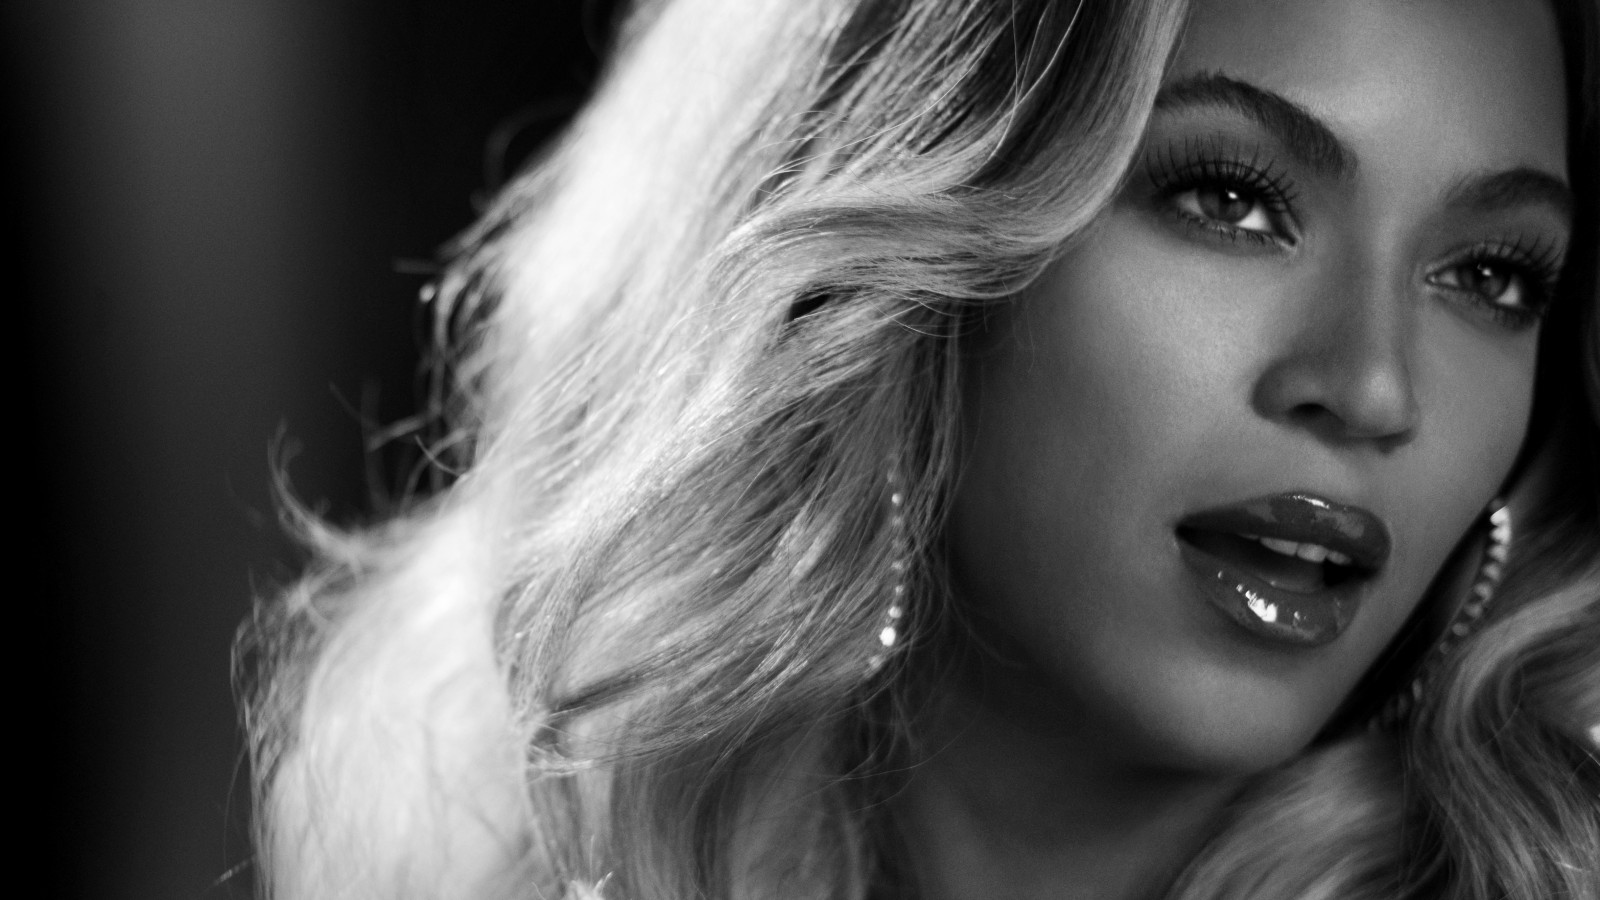 Beyonce in Black & White Wallpaper for Desktop 1600x900